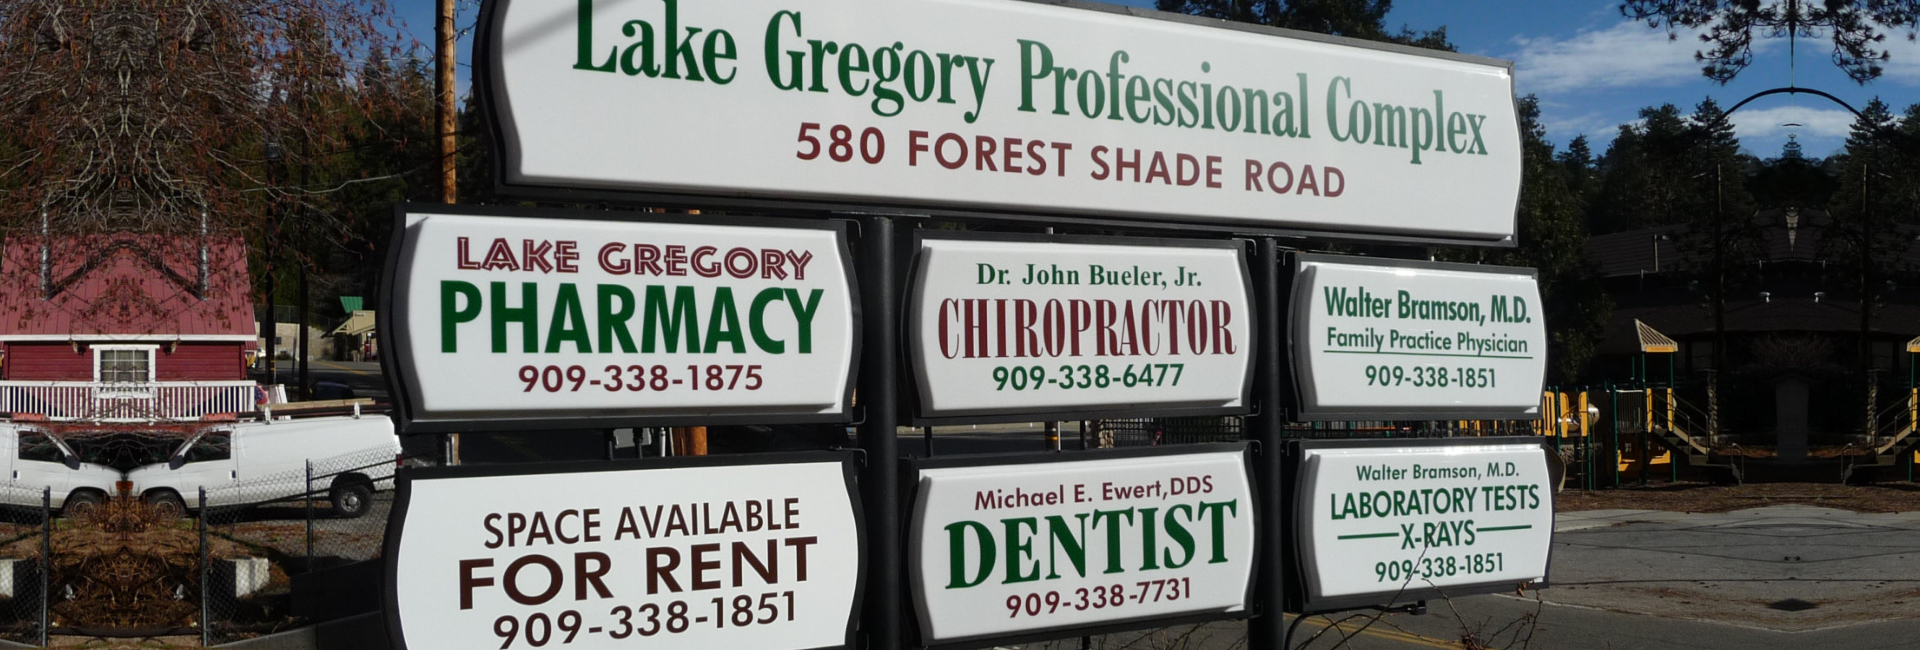 lake gregory professional complex